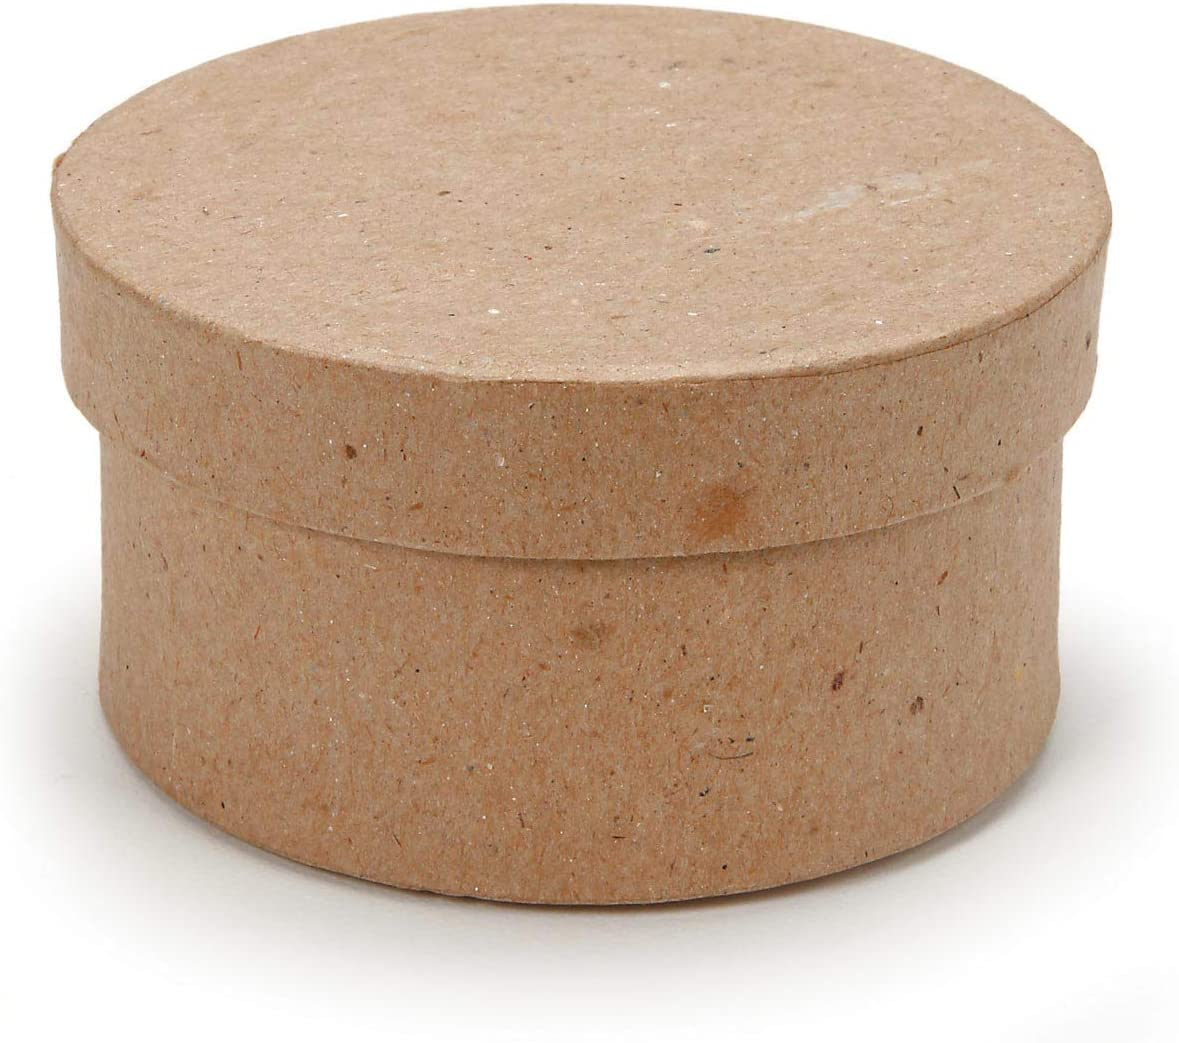 Darice Paper Mache Round Box Set 8 Inches 9 Inches and 10 Inches 2 Pack